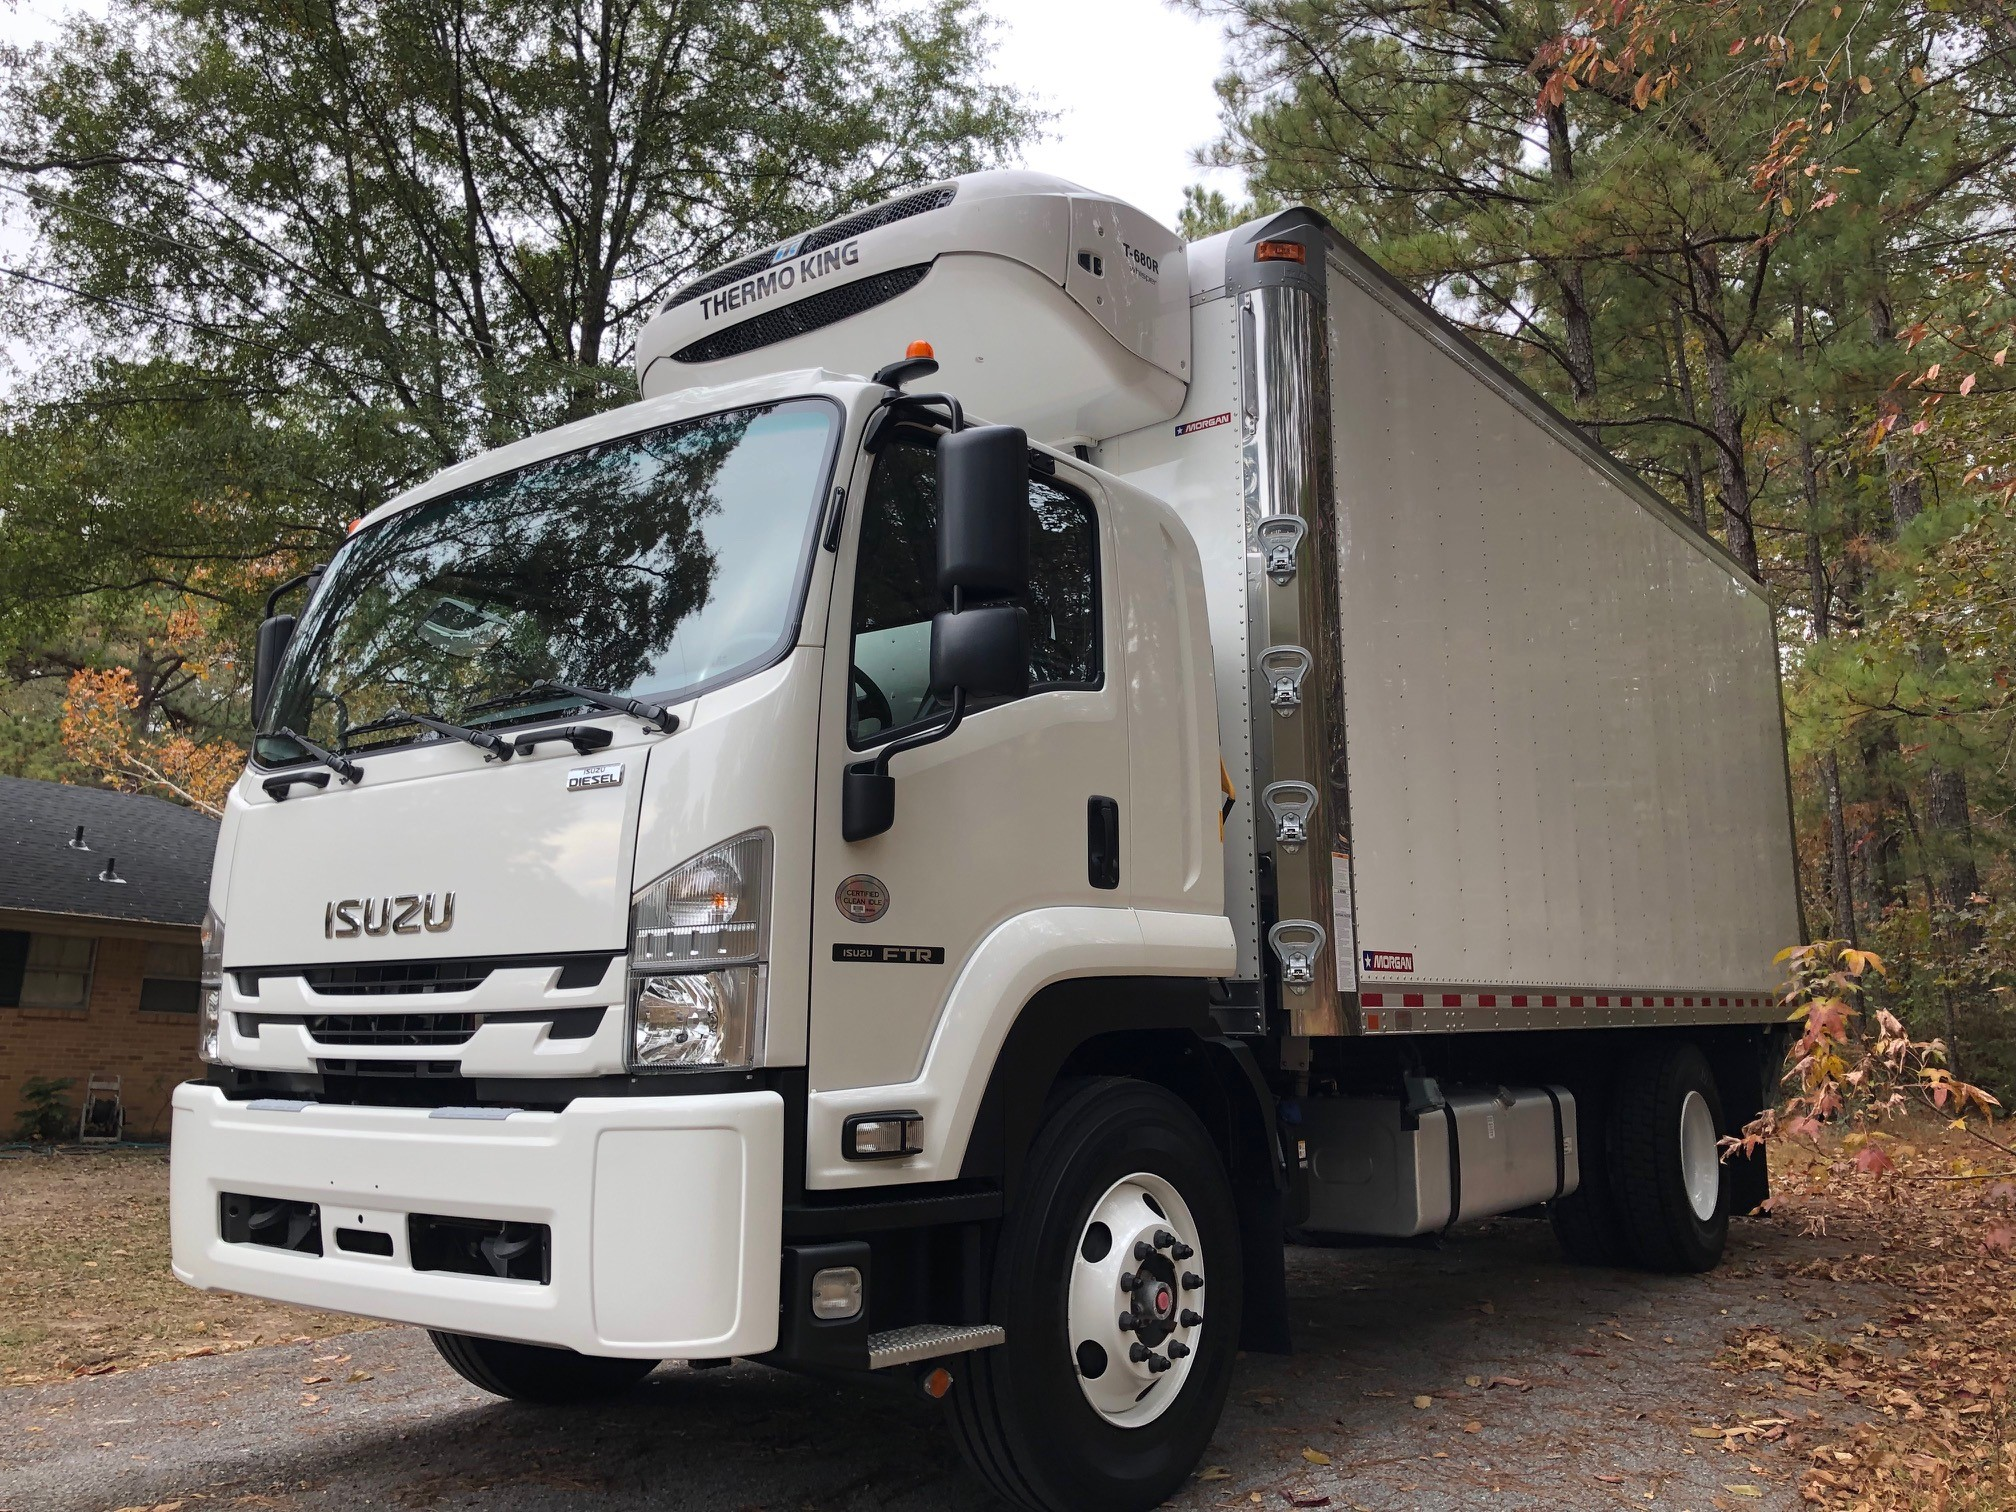 Test Drive: Driving the FTR, Isuzu's Biggest Truck